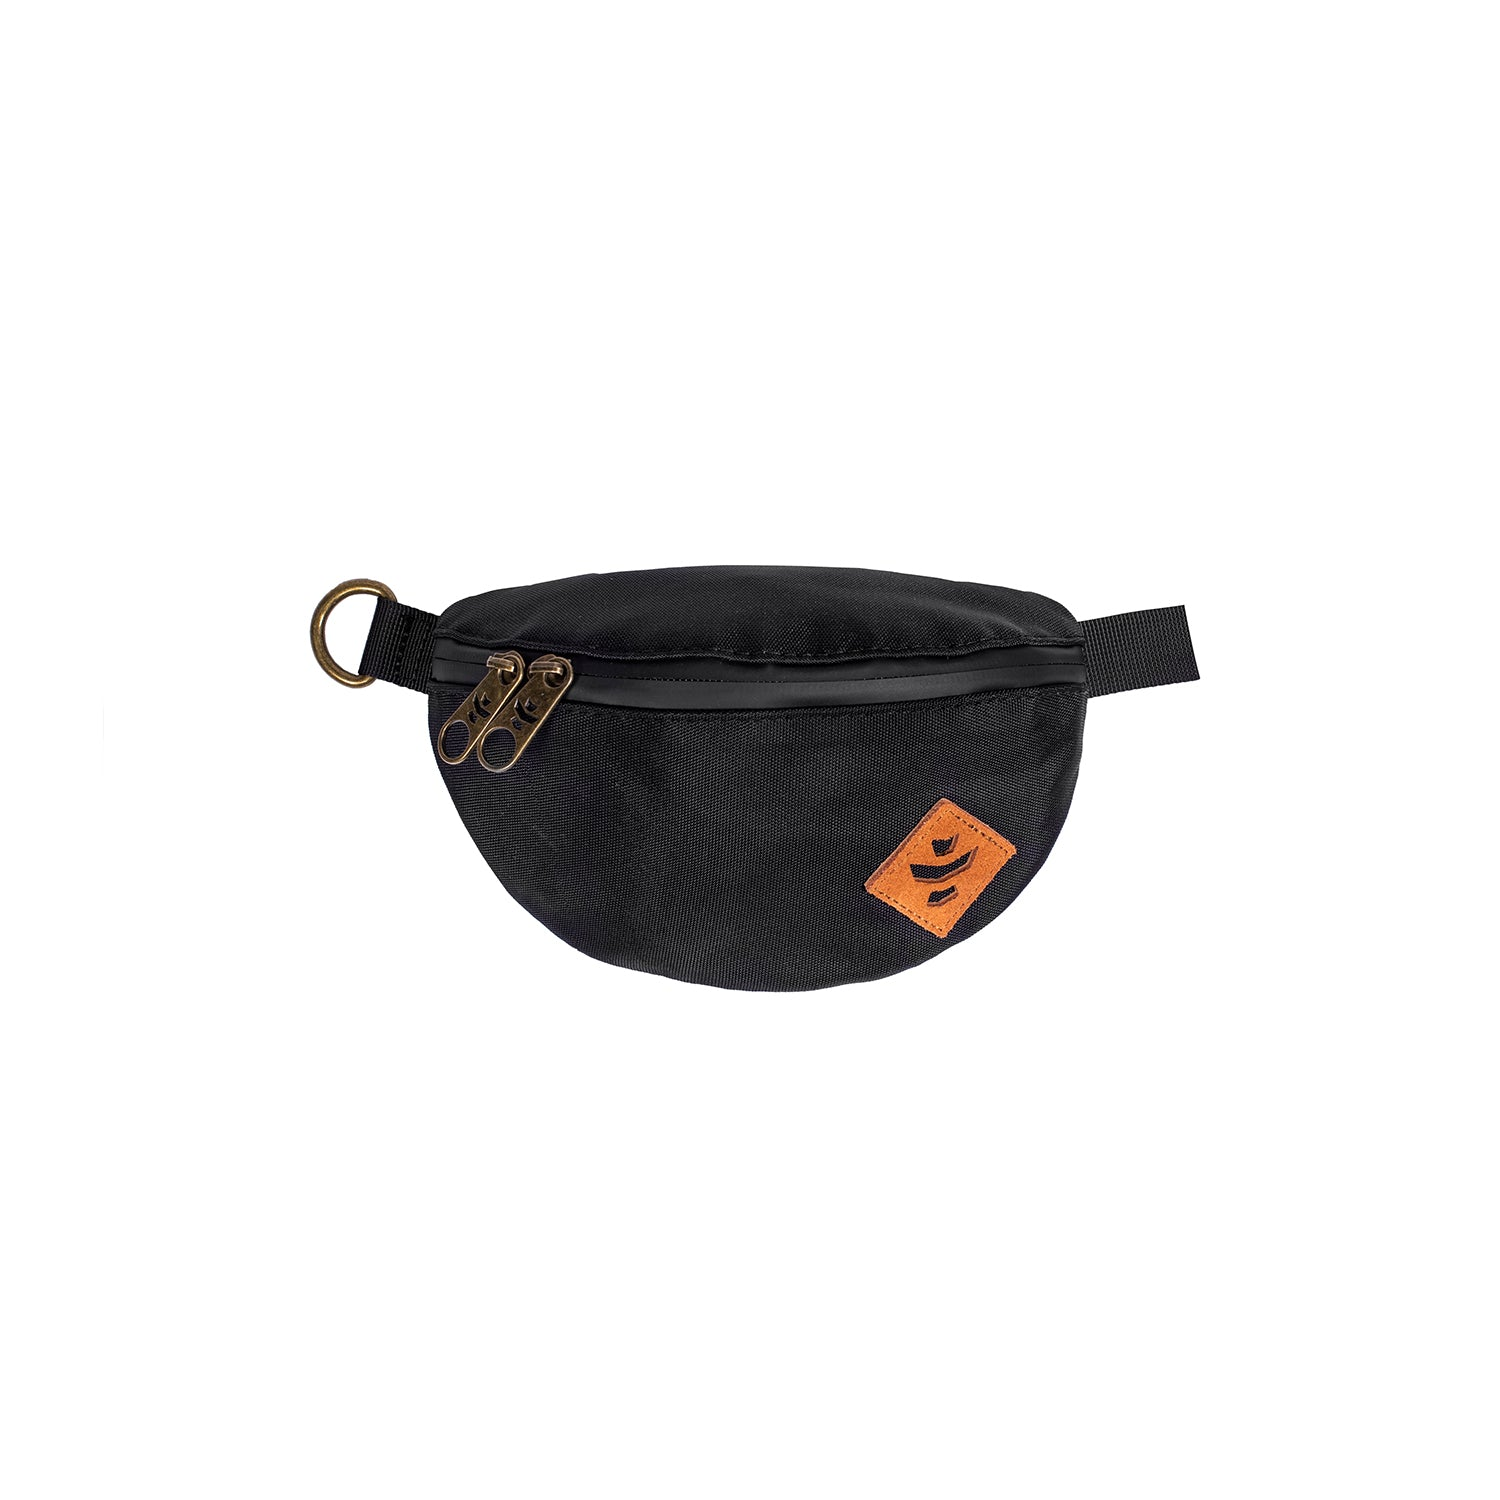 Black Nylon Smell Proof Water Resistant Fanny Pack